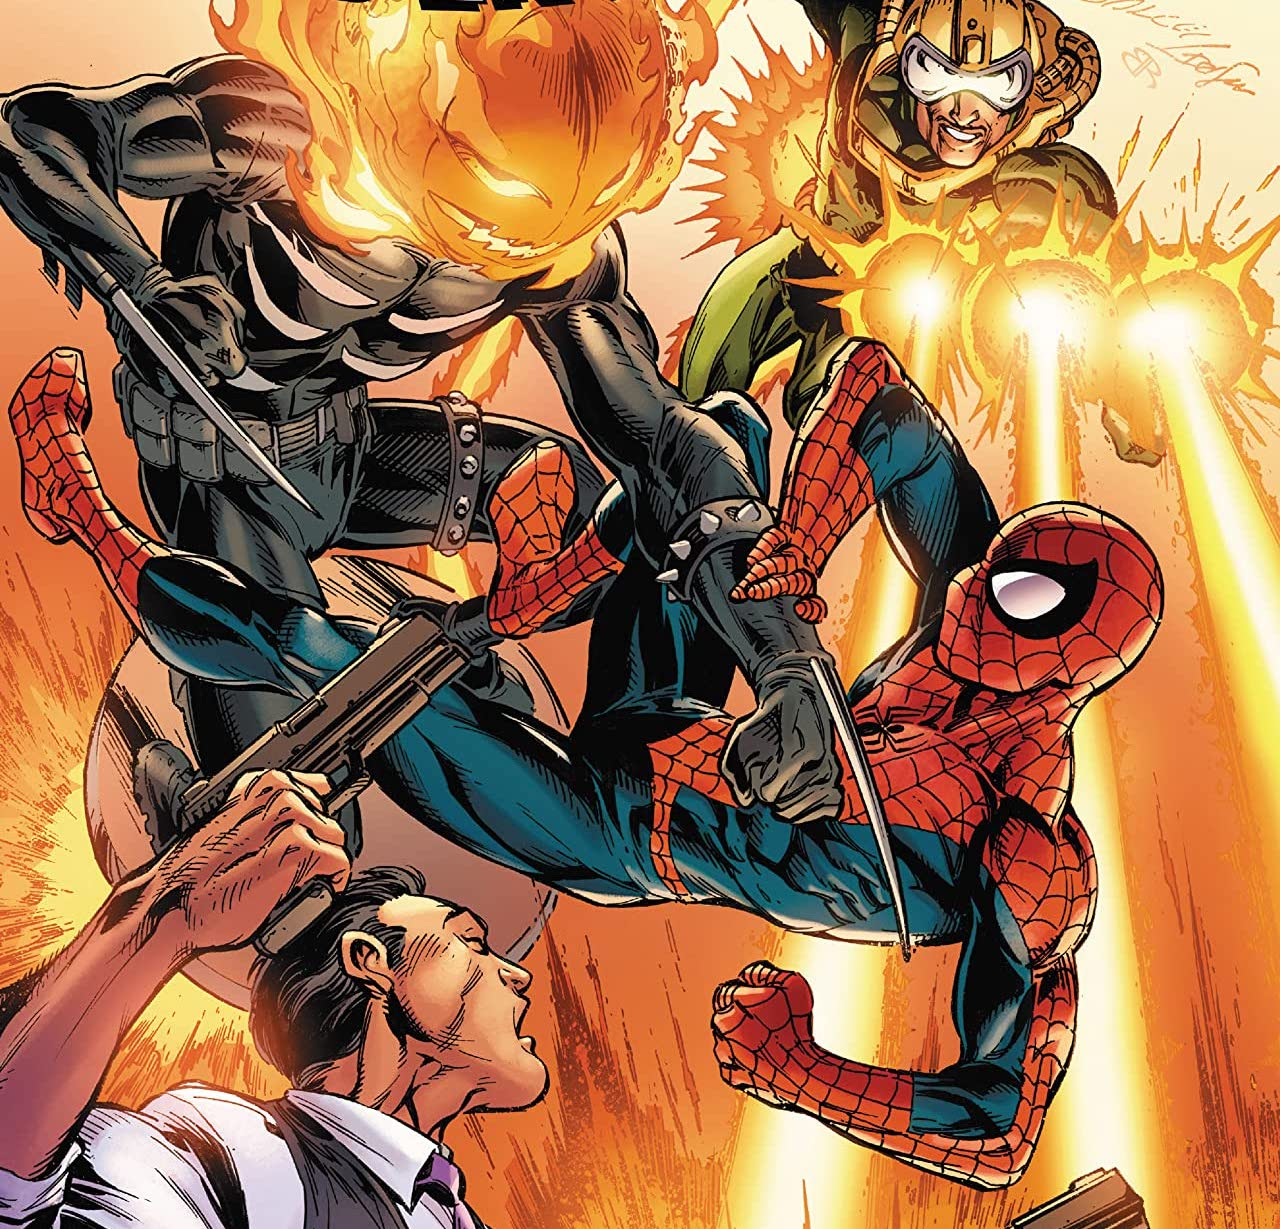 'Amazing Spider-Man' #69 continues to wrap up plots